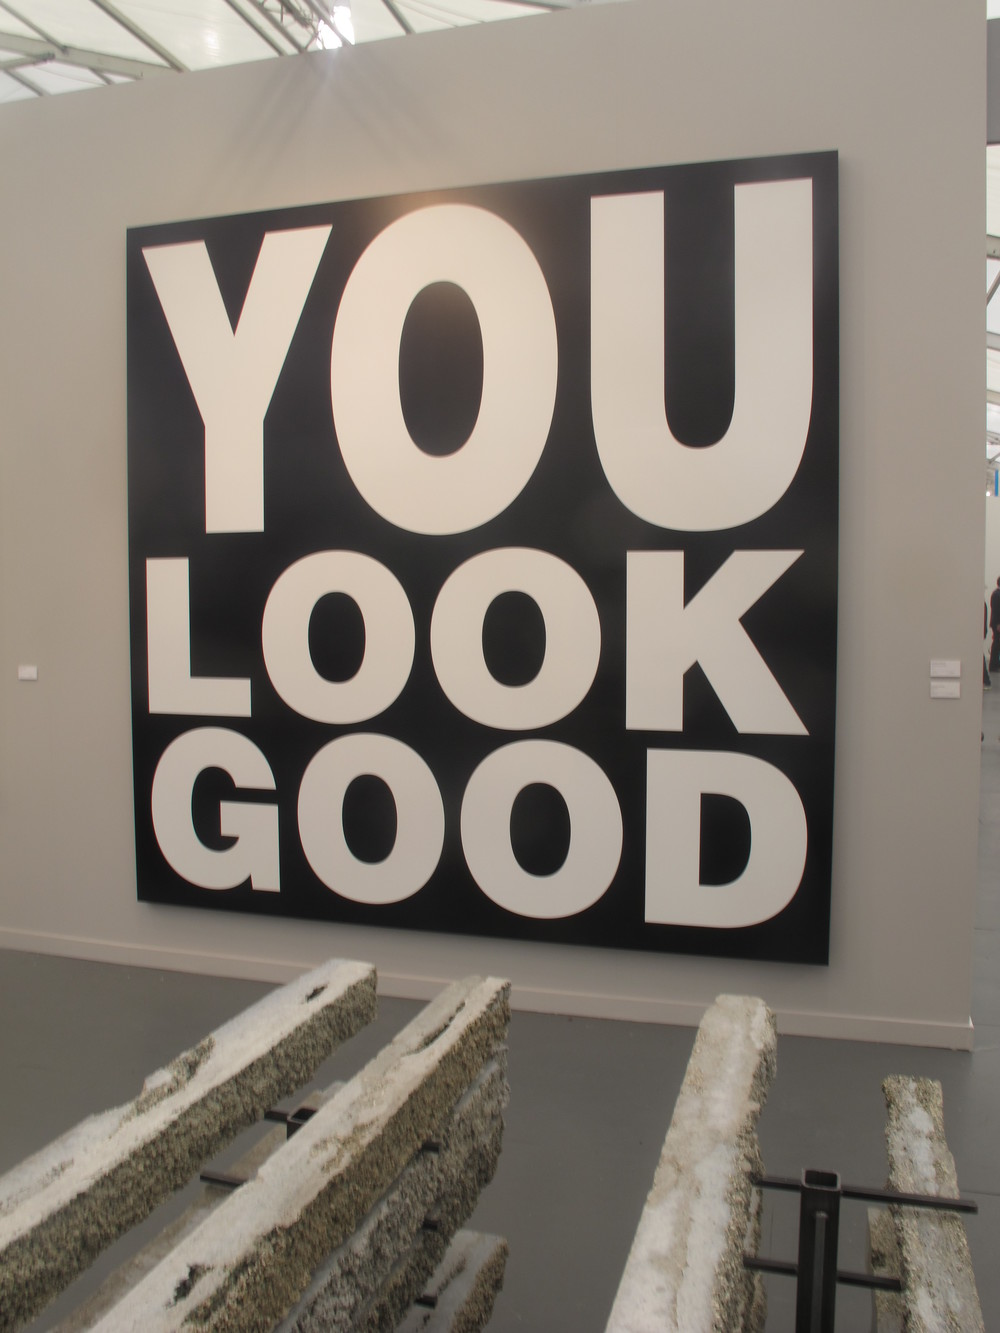 Barbara Kruger's piece was a boost of self-esteem for all the fair's attendants